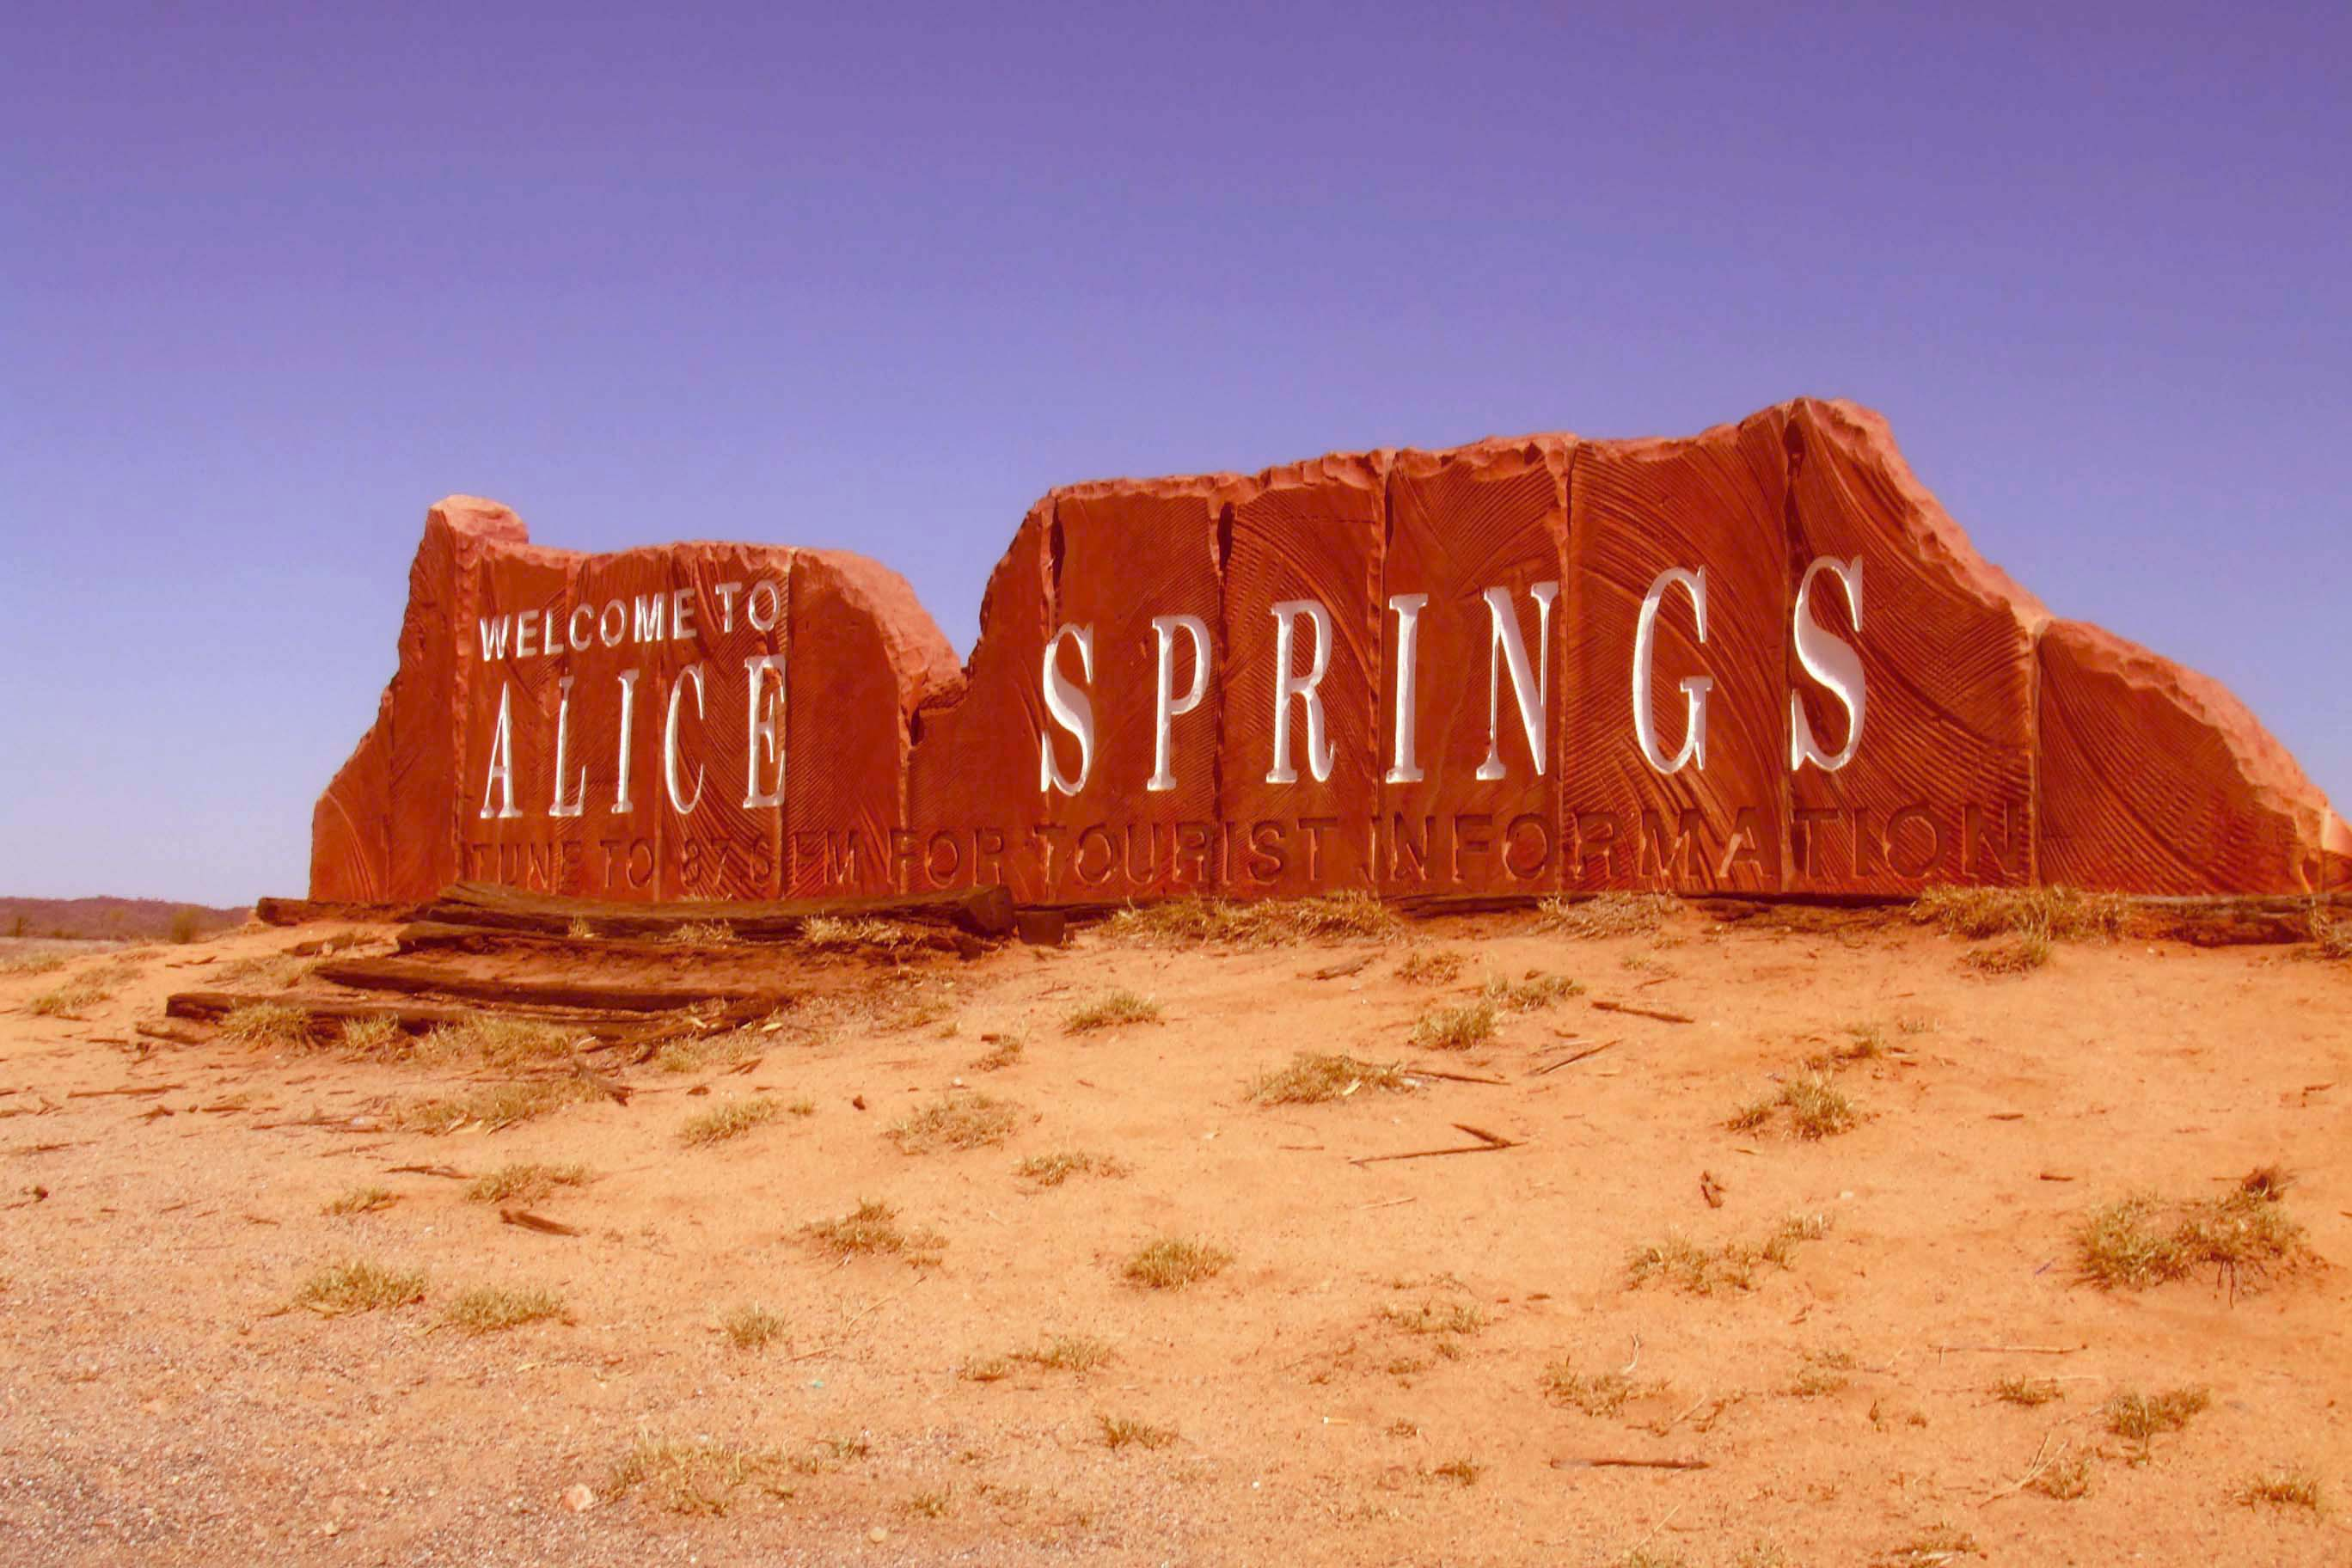 alice springs chatrooms Omegle alice springs goomegle is the best chatroulette and omegle alternative omegle alice springs connect you to random people around the alice springs have fun in goomegle.